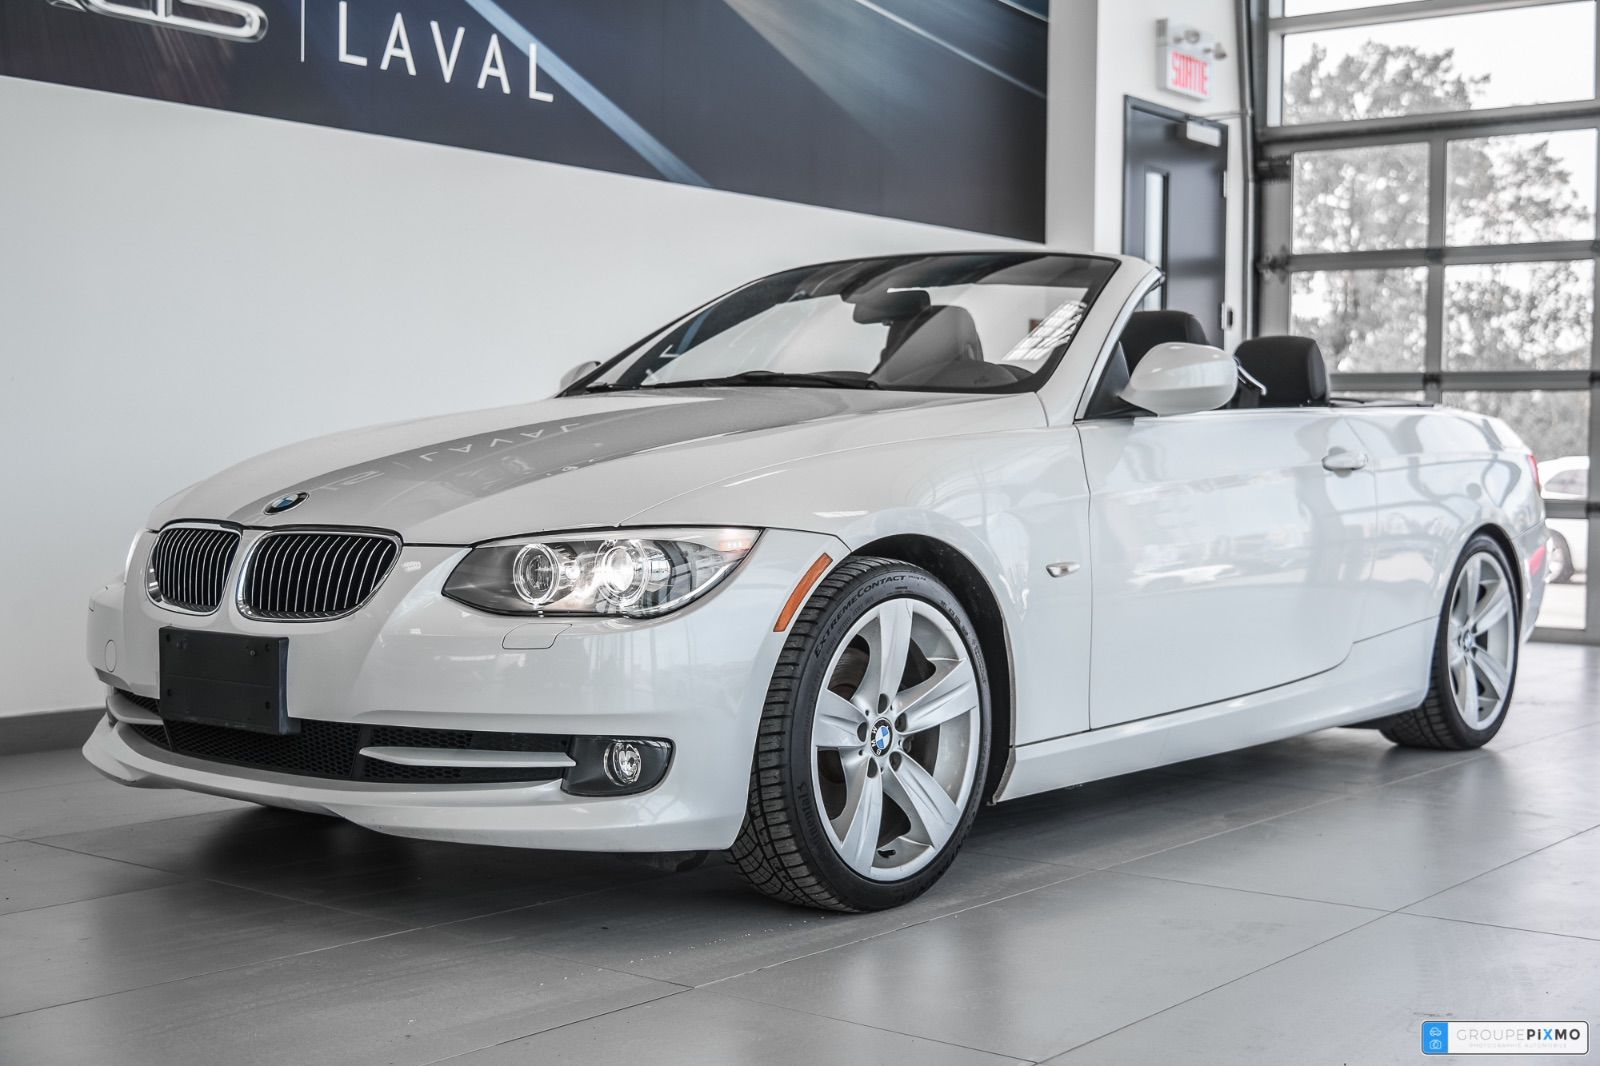 hight resolution of pre owned 2011 bmw 328i convertible 328i gps cuir 165 sem txs incluses in laval pre owned inventory lexus laval in laval